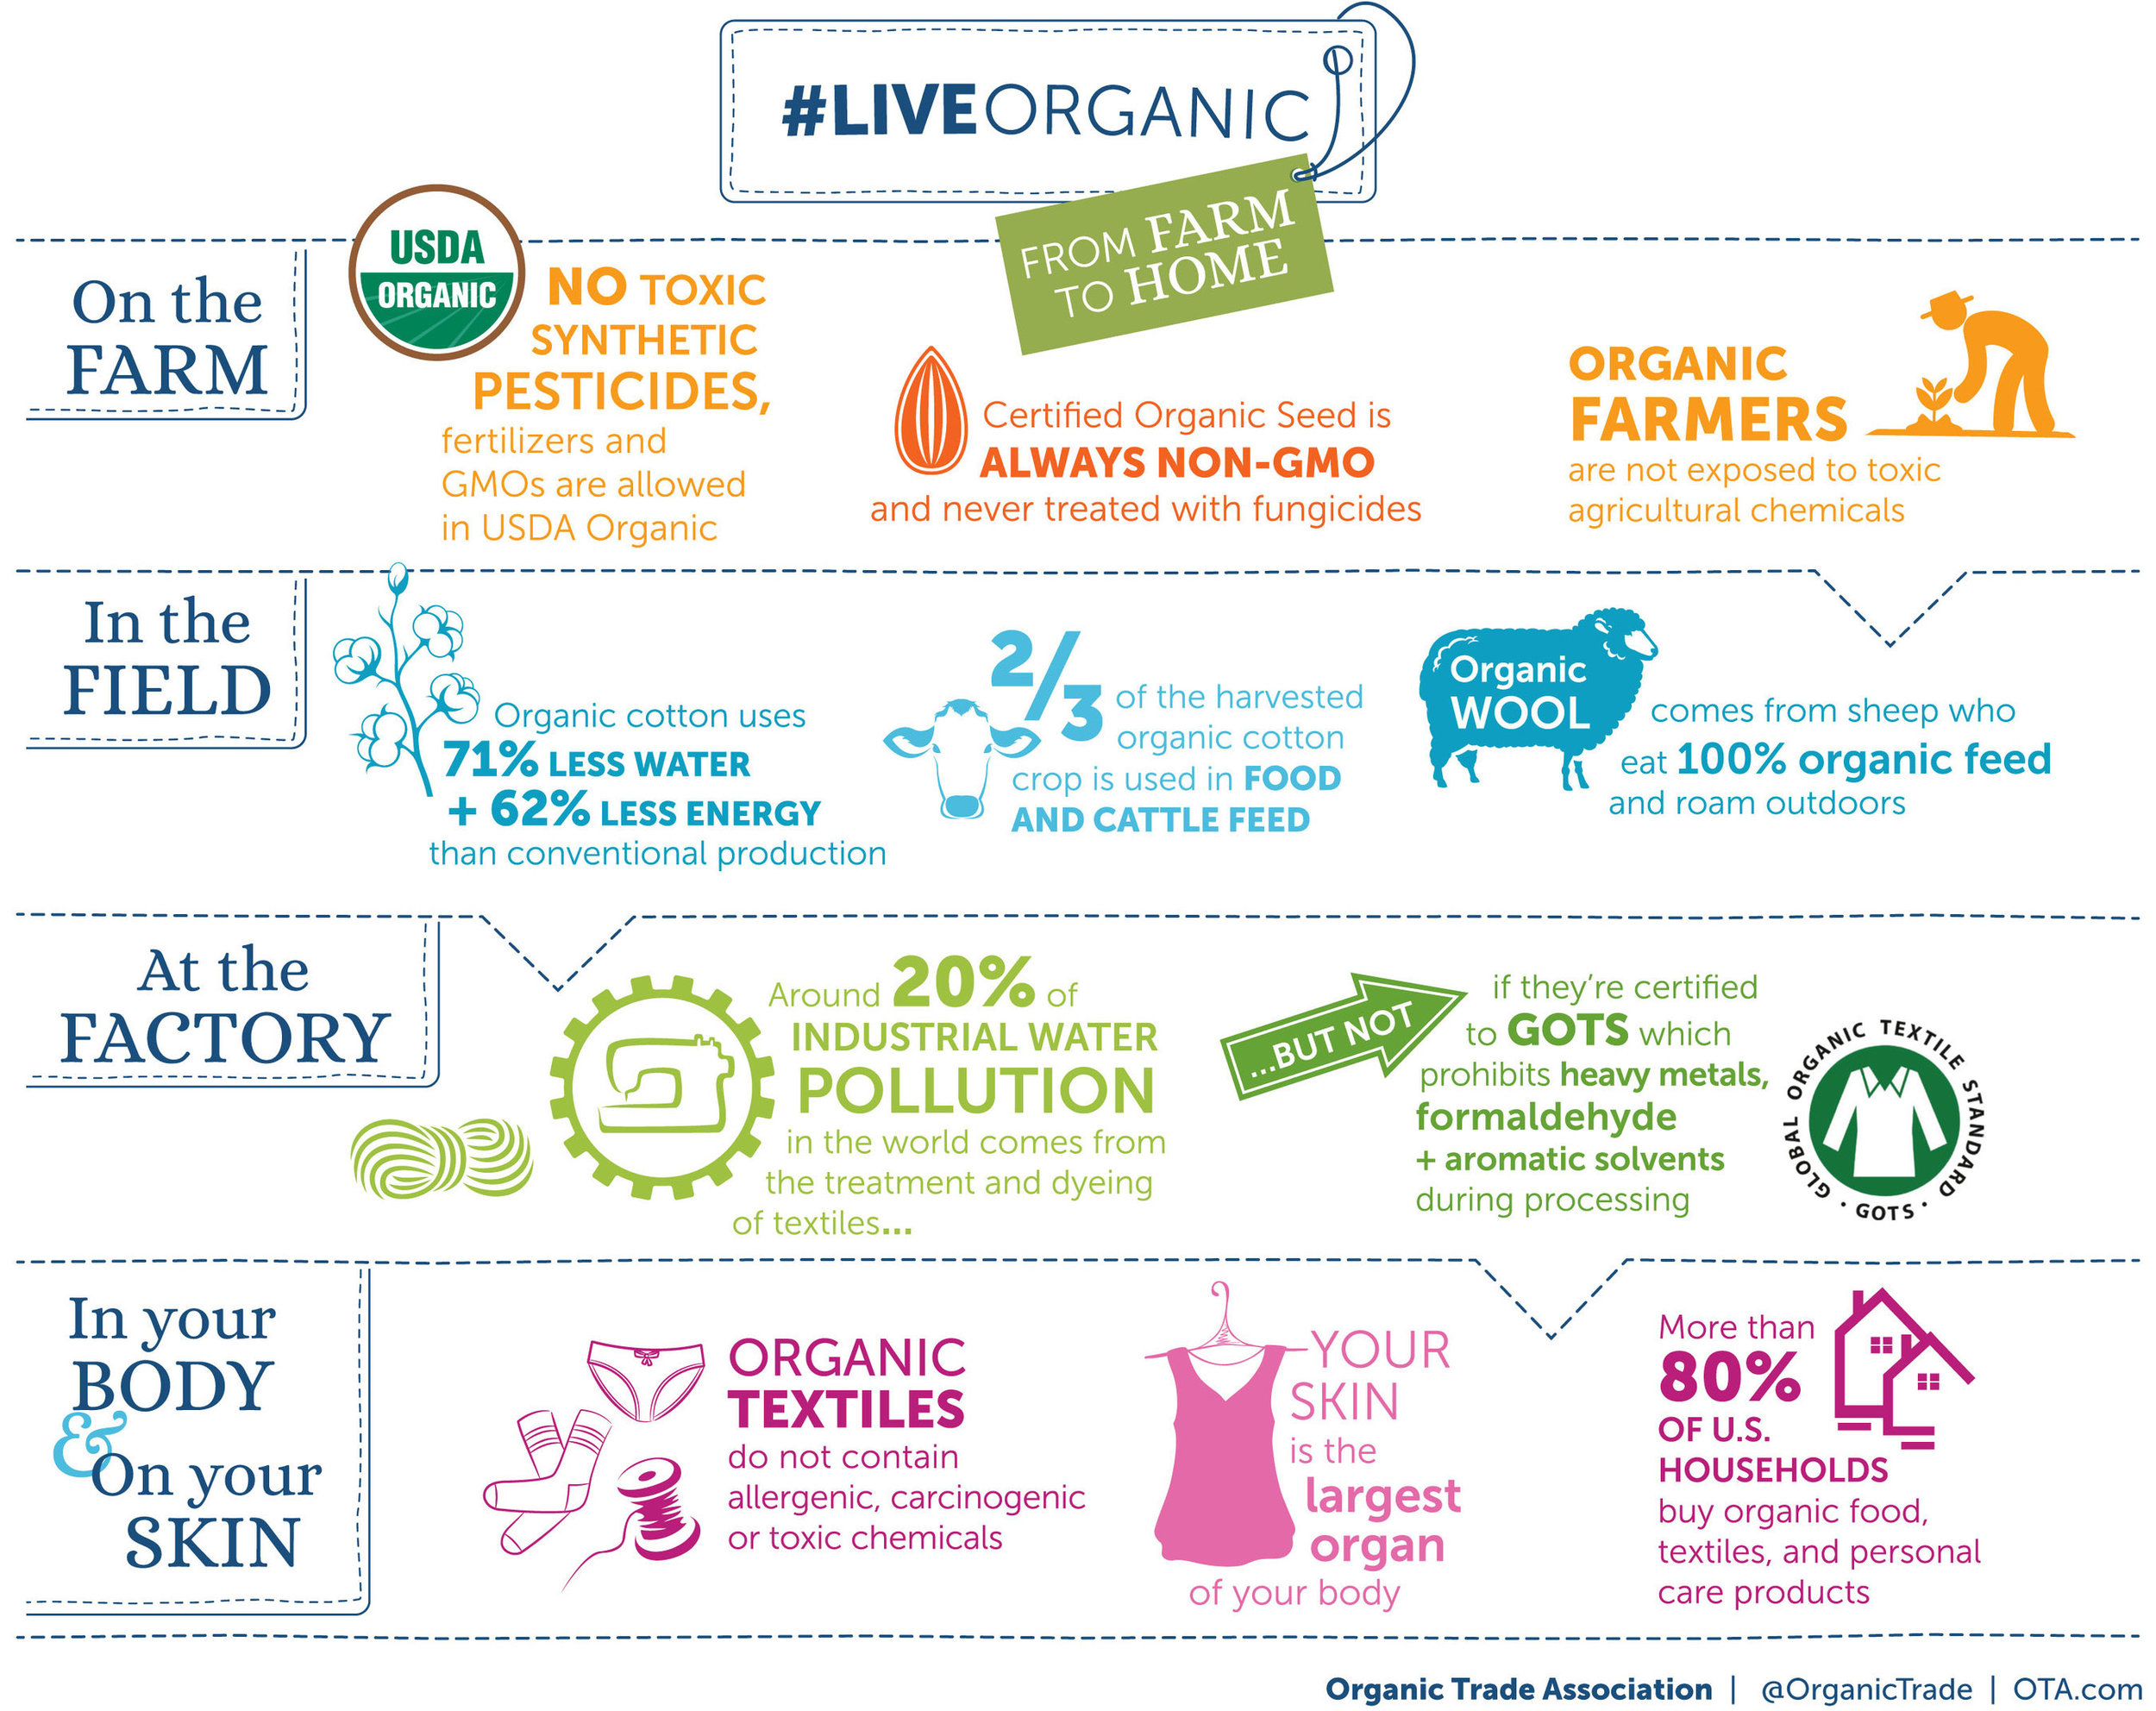 live-organic-farm-to-field-factory-home-body